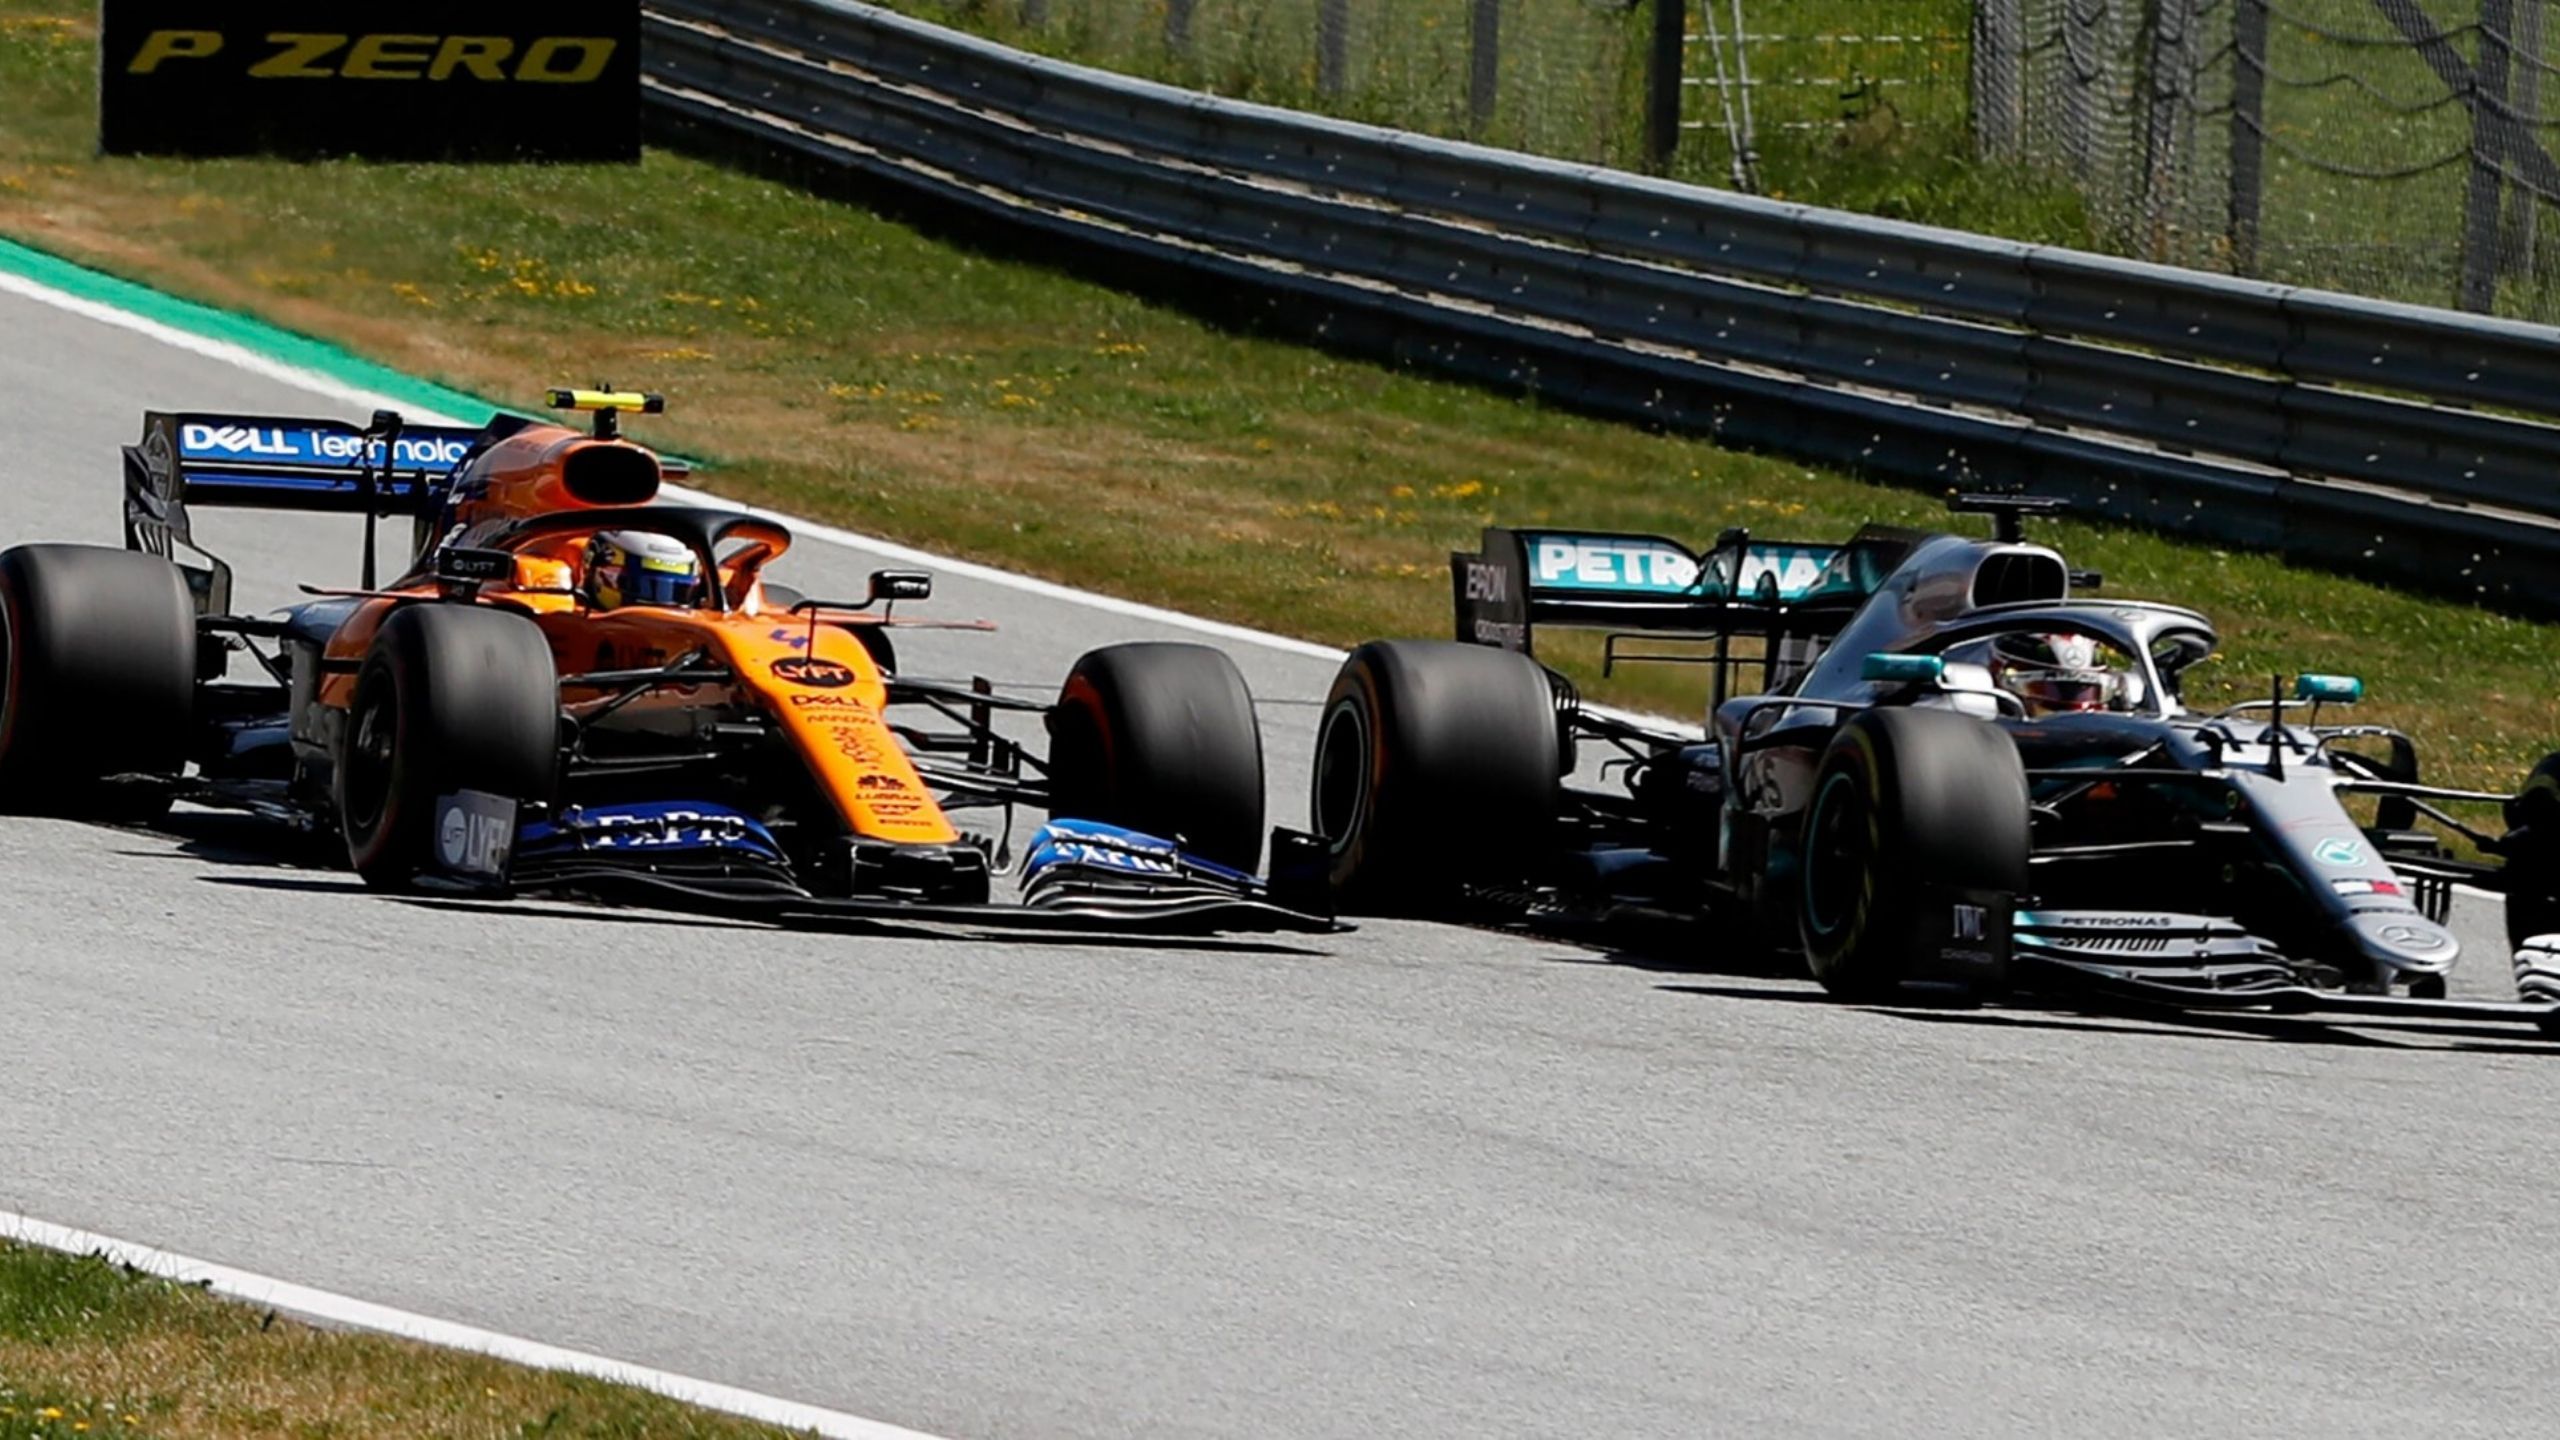 """We have a great history with Mercedes"" - McLaren CEO Zak Brown excited to switch from Renault to Mercedes"